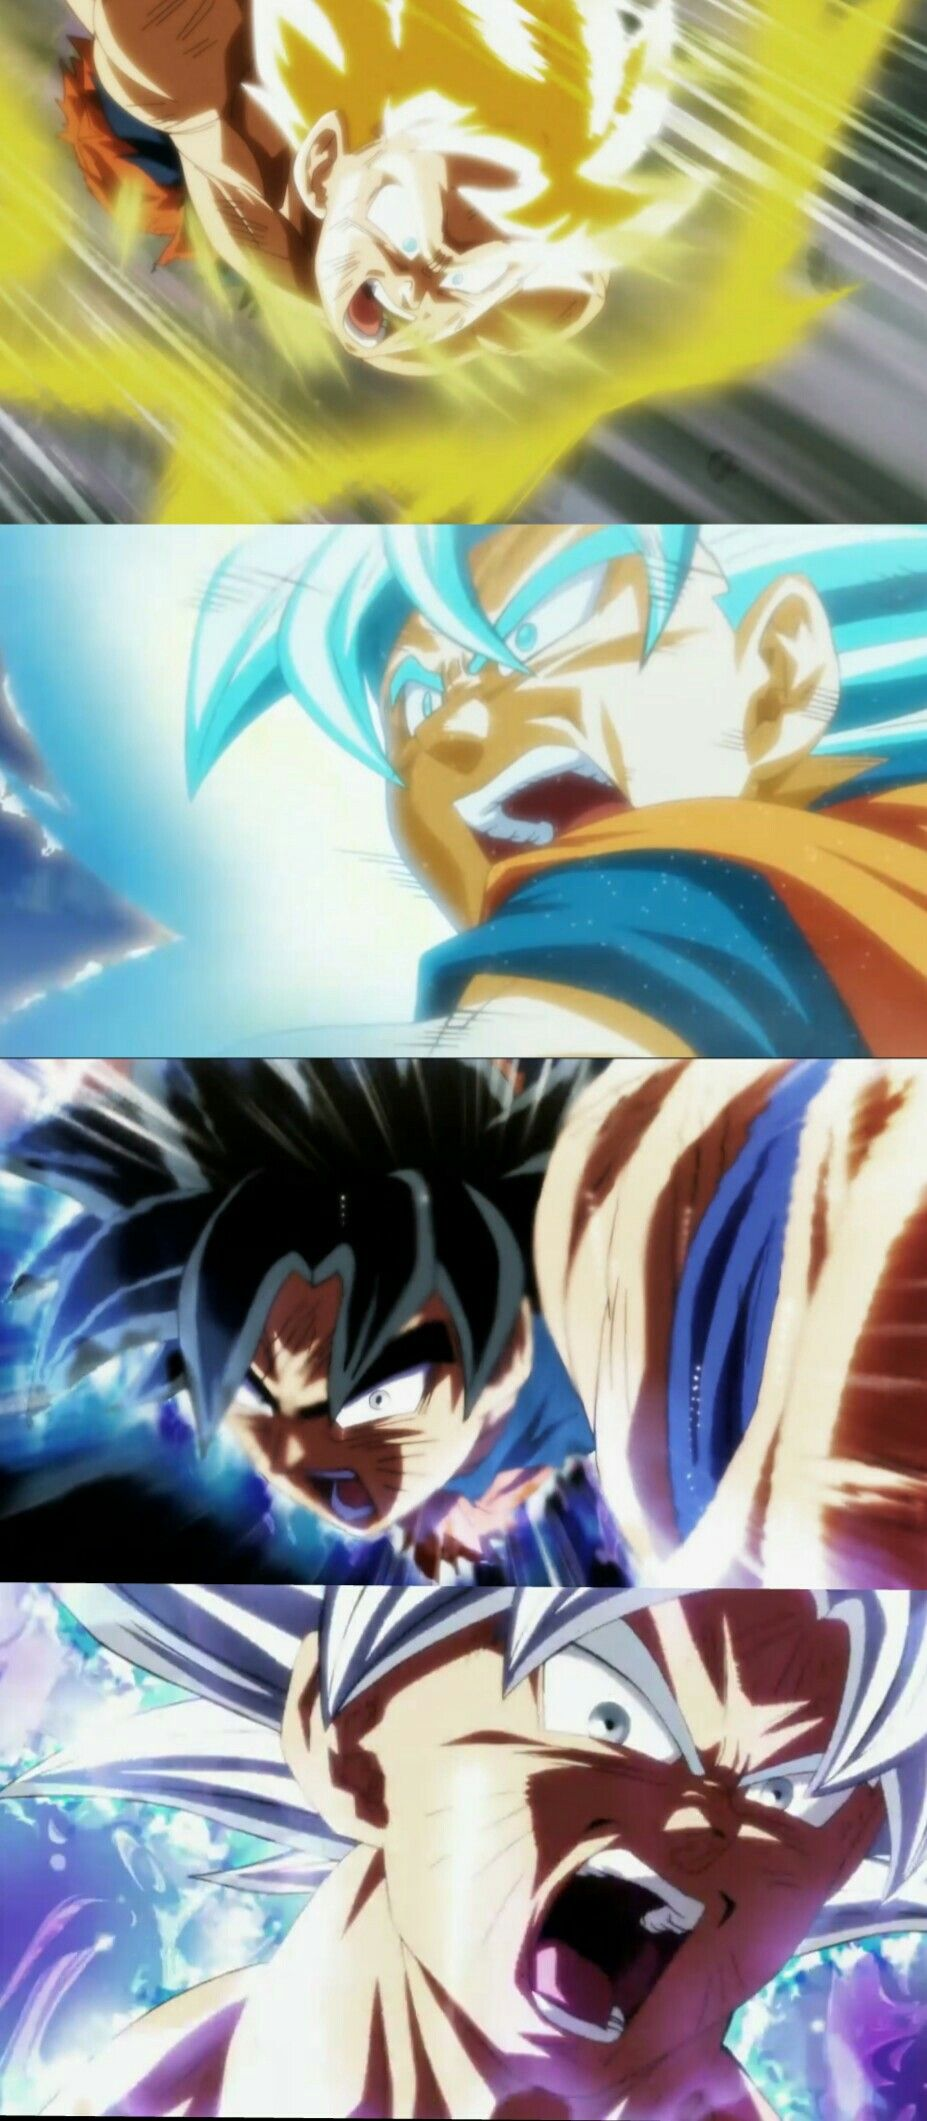 Best Animated Scenes Of Dragon Ball Super By Naotoshi Shida And